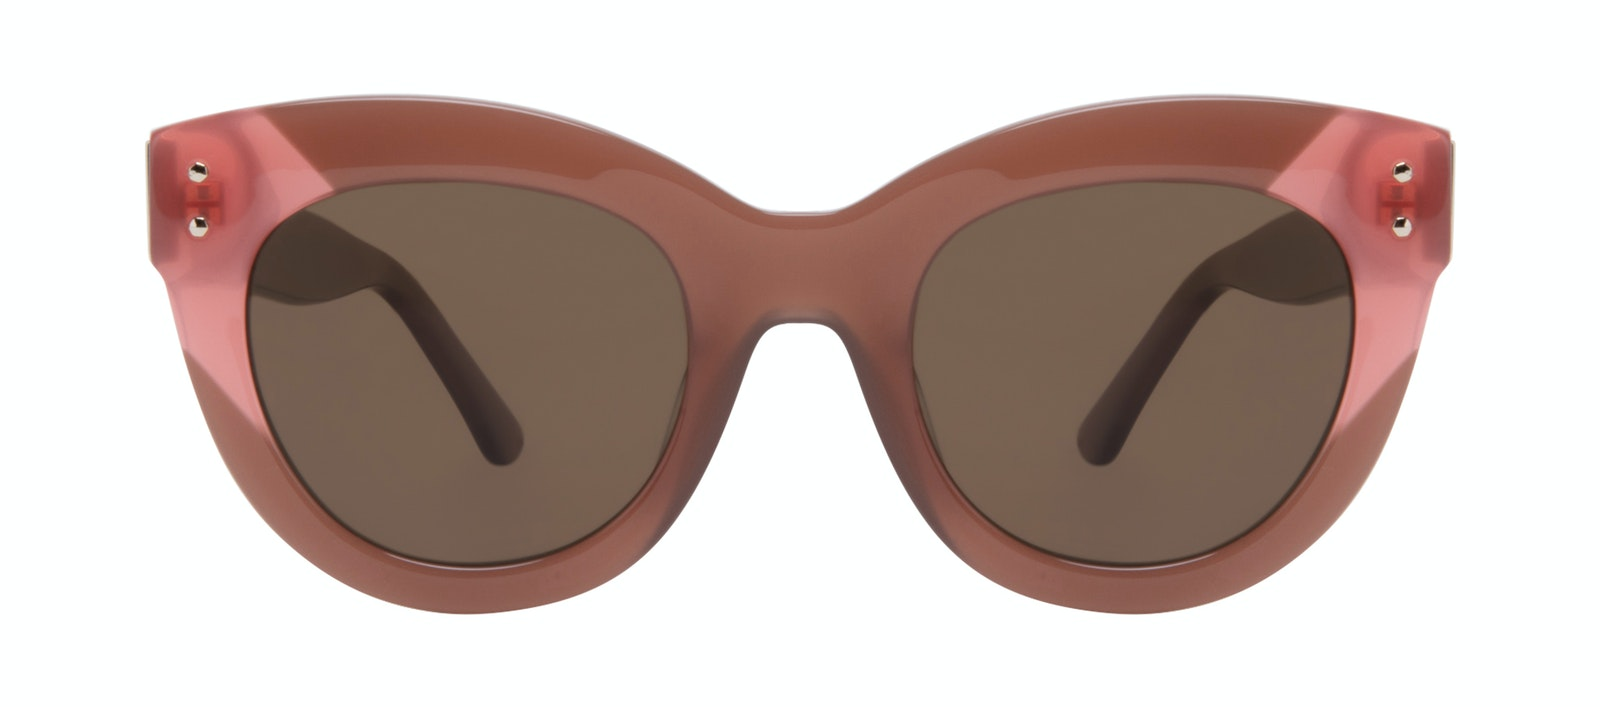 Affordable Fashion Glasses Cat Eye Sunglasses Women Groove Toffee Front